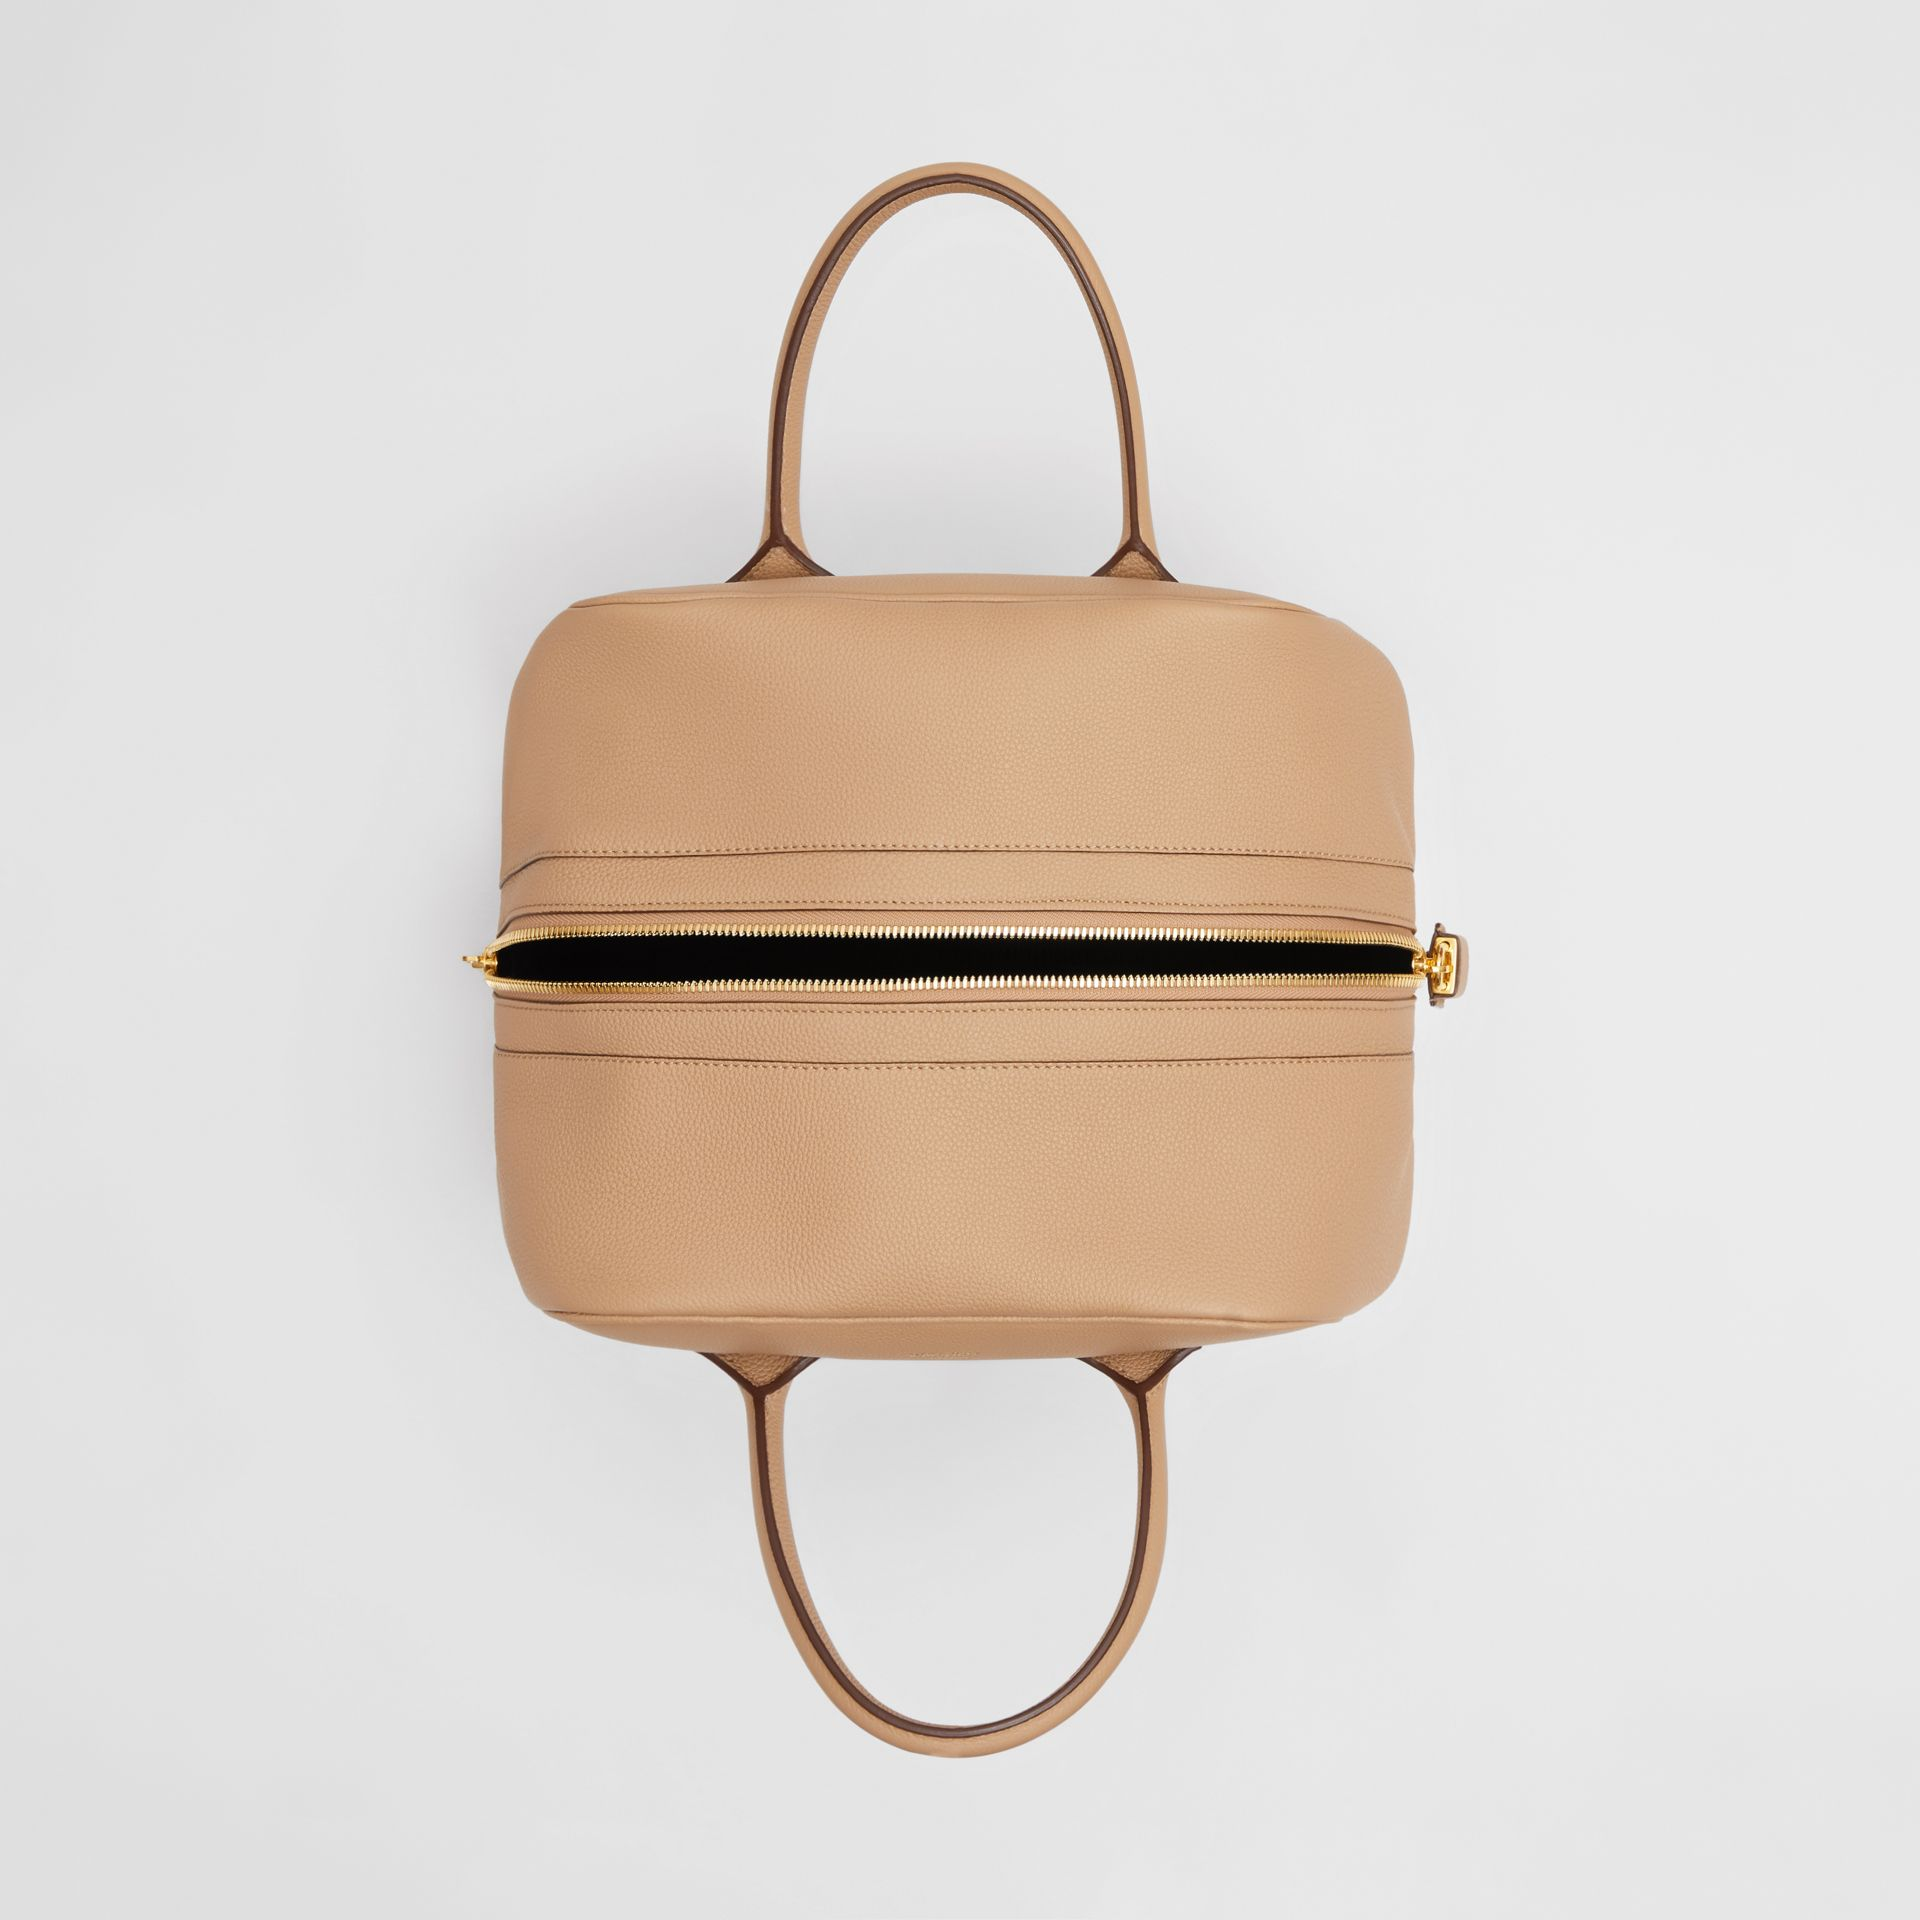 Medium Leather Cube Bag in Biscuit - Women | Burberry - gallery image 4